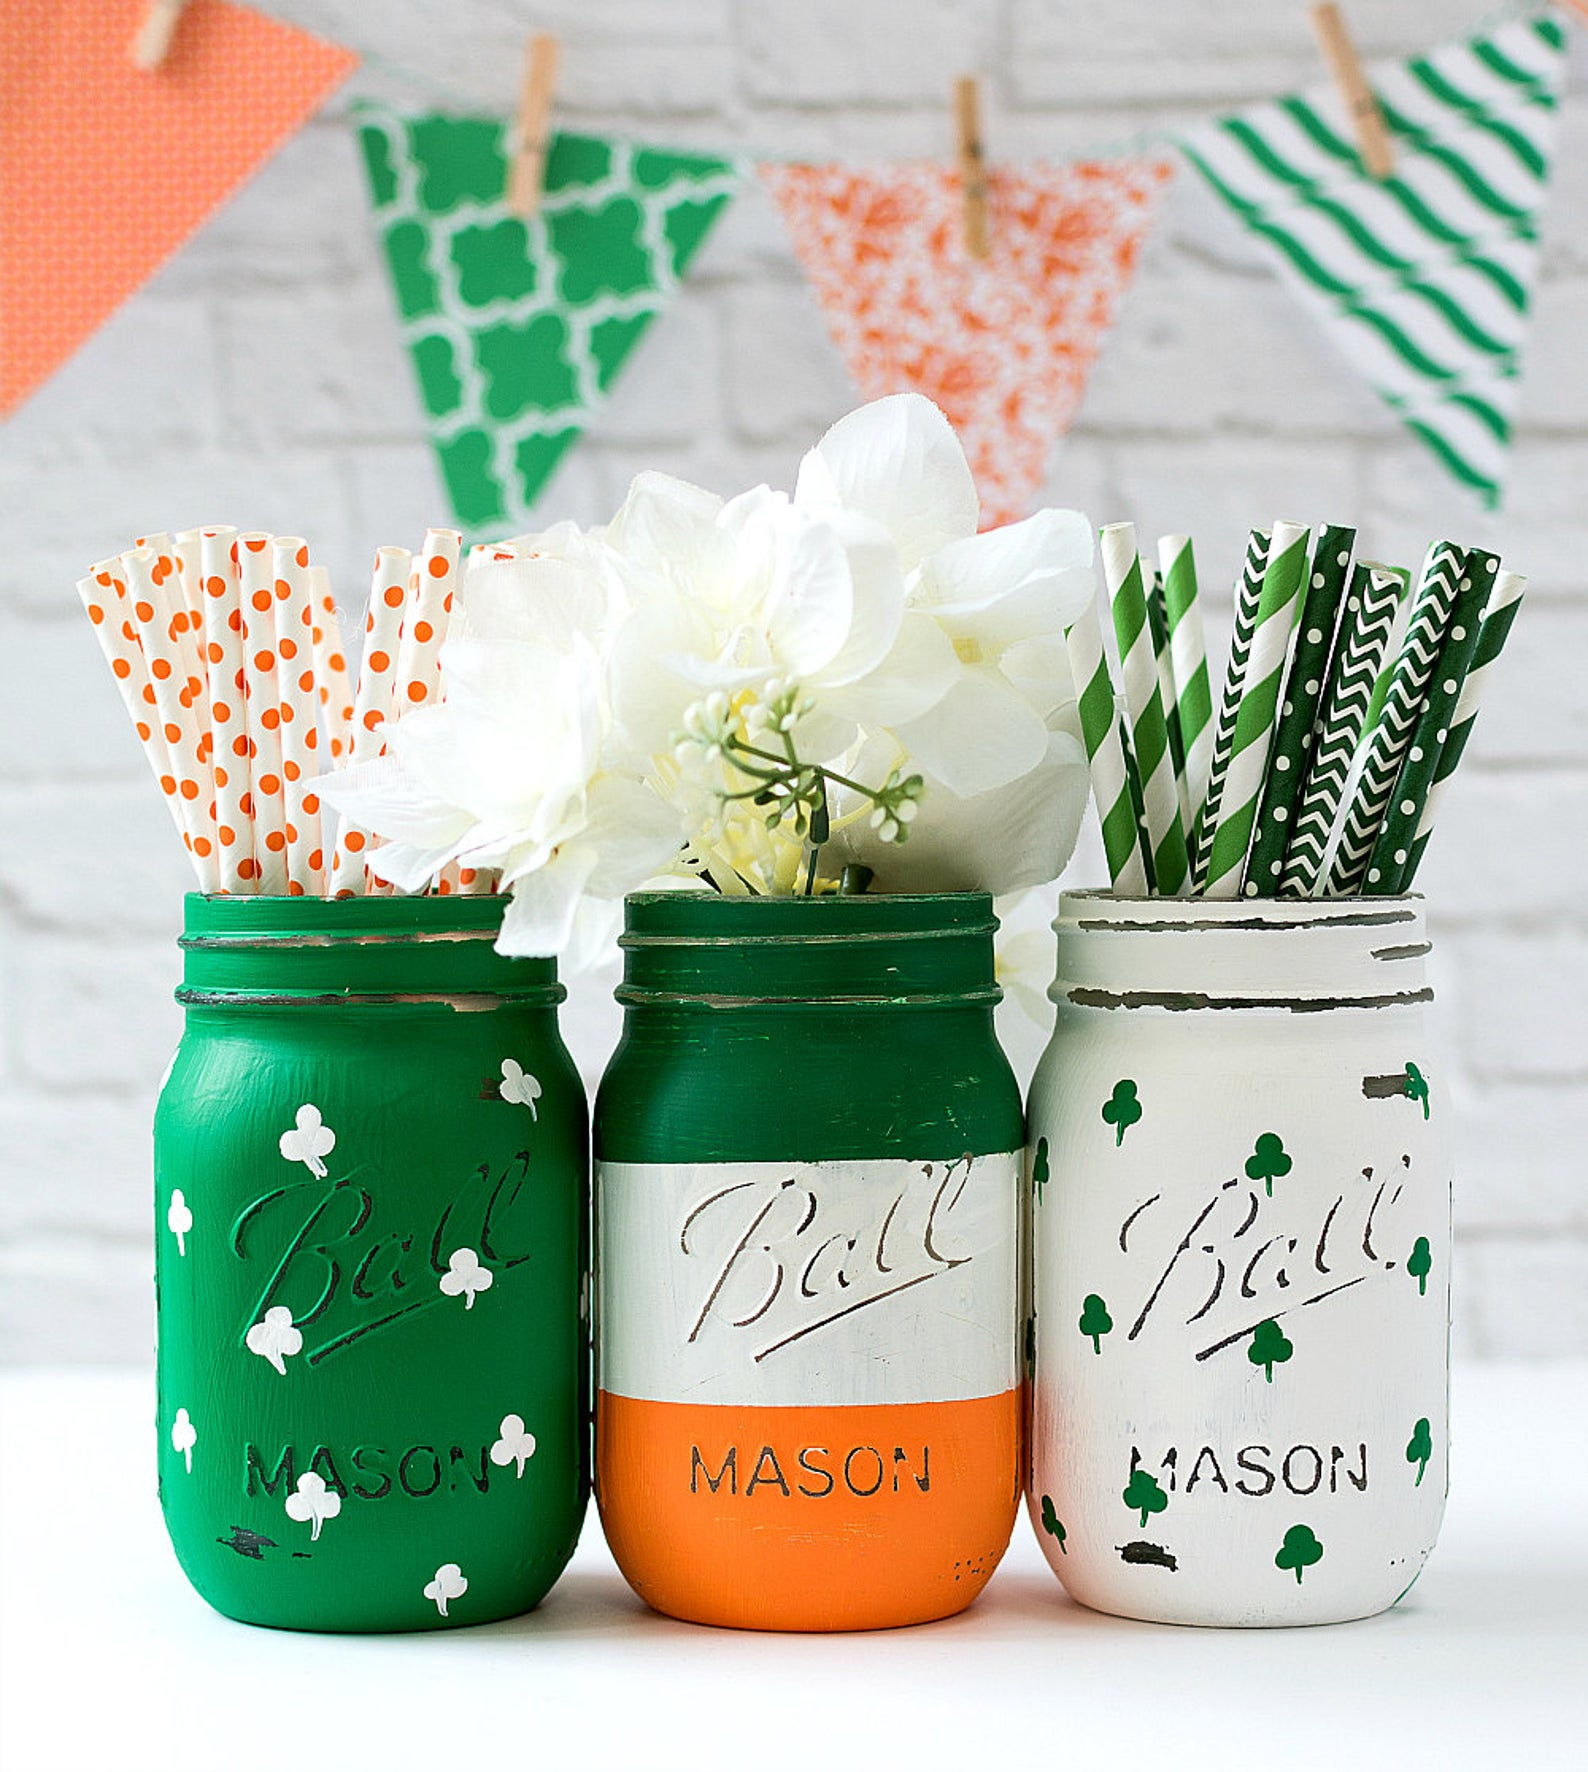 St. Patrick & # 39; s Day Mason Jars, Irish Mason Jars